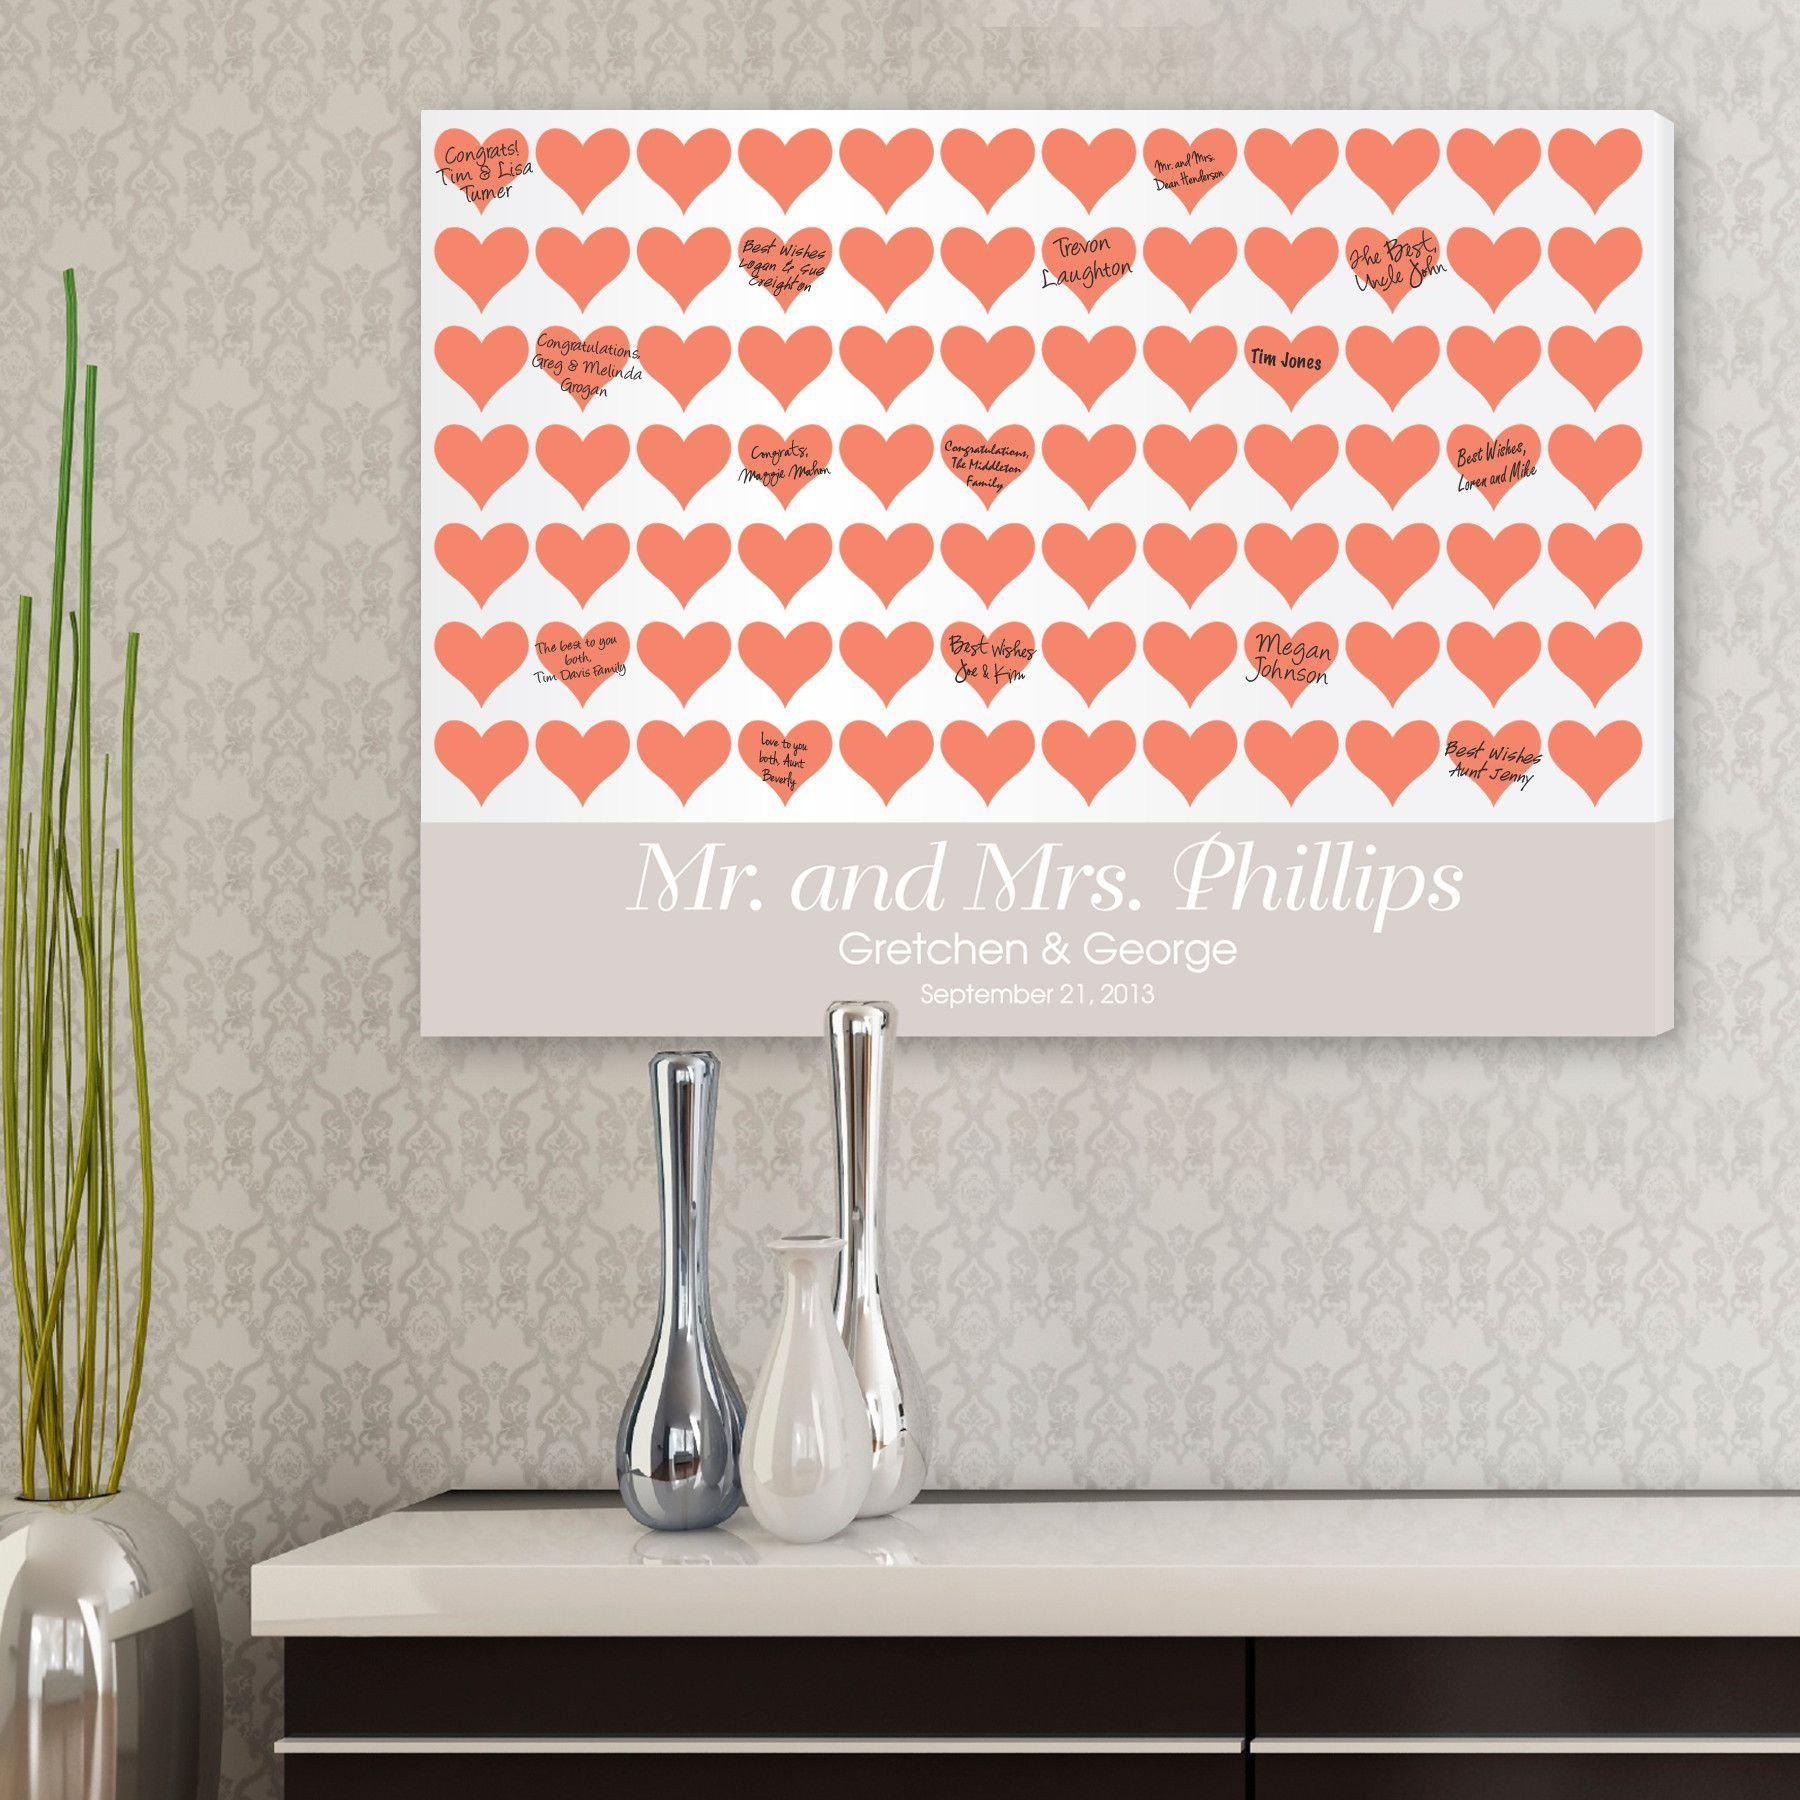 Personalized-Guestbook-Canvas-Poppy-Hearts